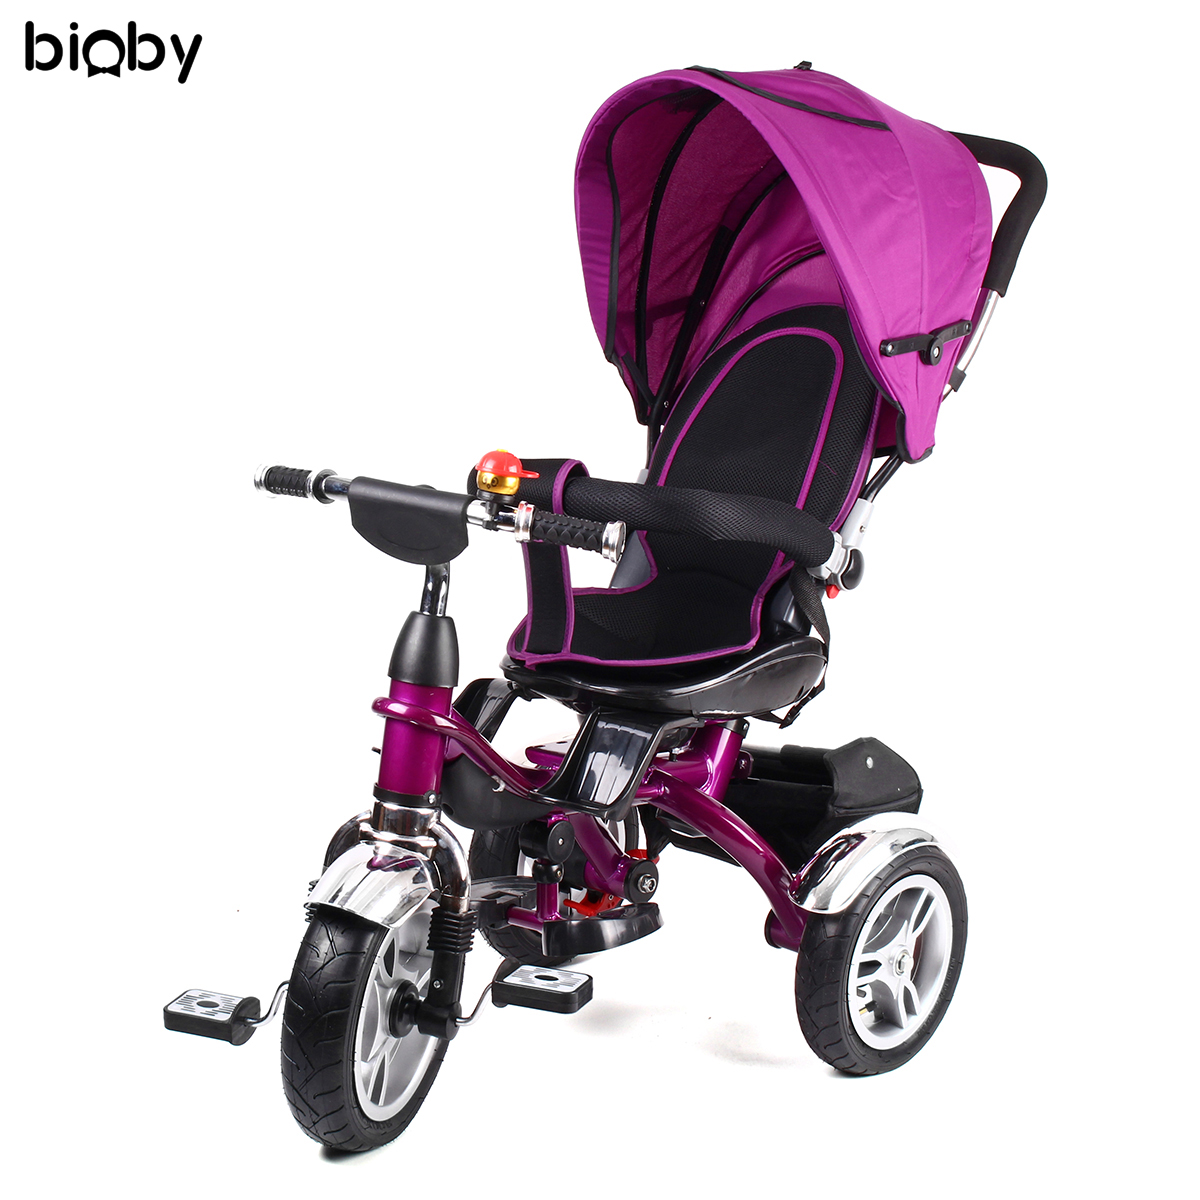 Baby Kids Reverse Toddler Tricycle Bike Trike Ride-On Toys Stroller Prams 360 Degree Rotating Chair Car Seats Sleeping Safety маска vichy mineral masks set 15 мл